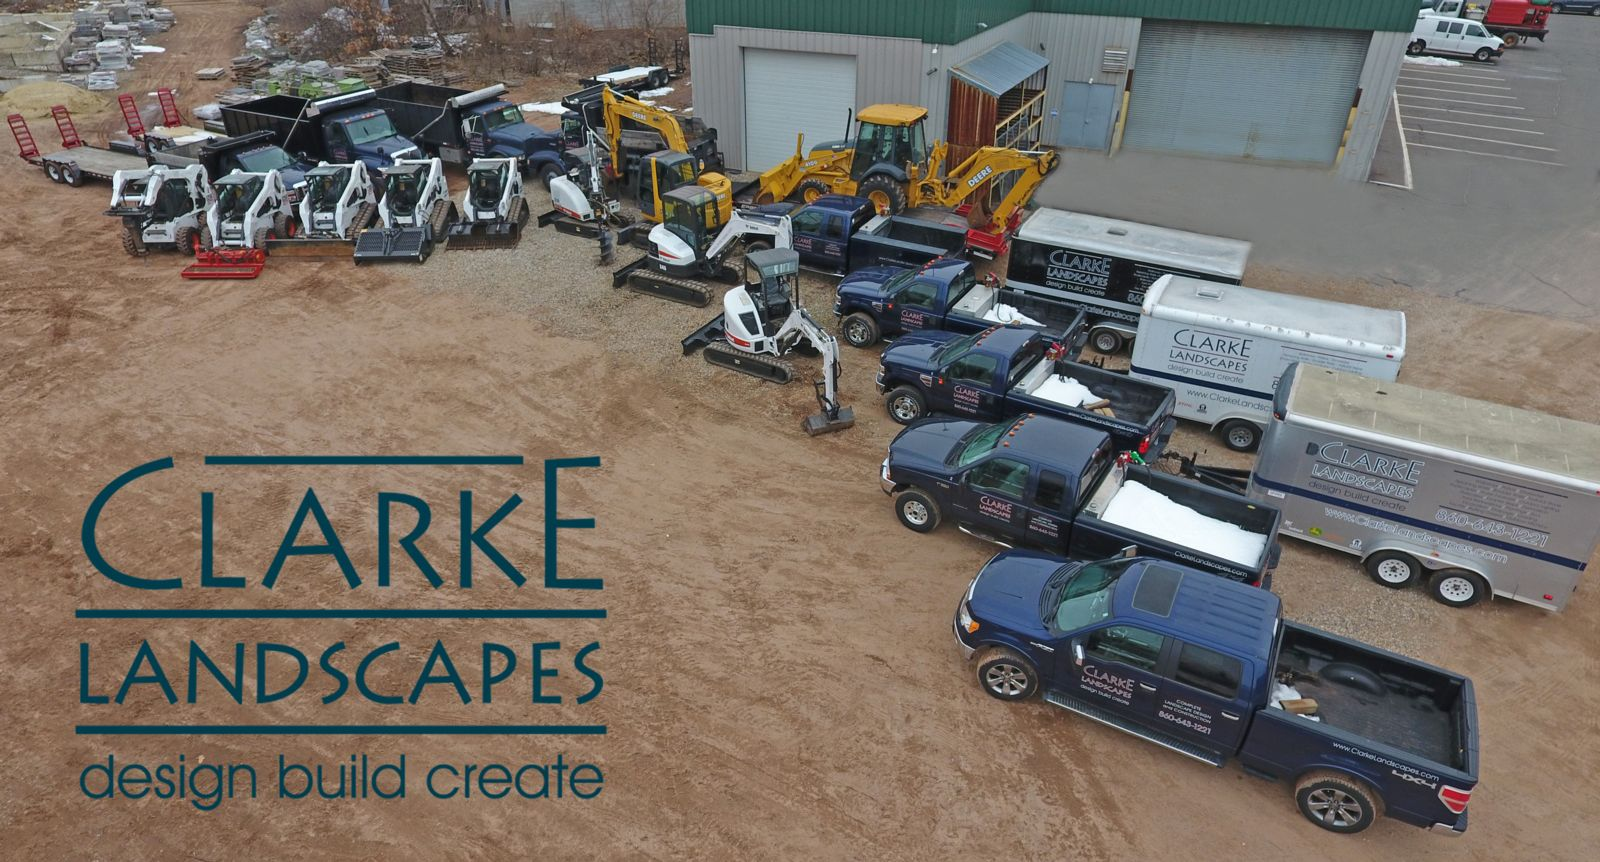 Clarke Landscapes - landscaping companies in Glastonbury CT